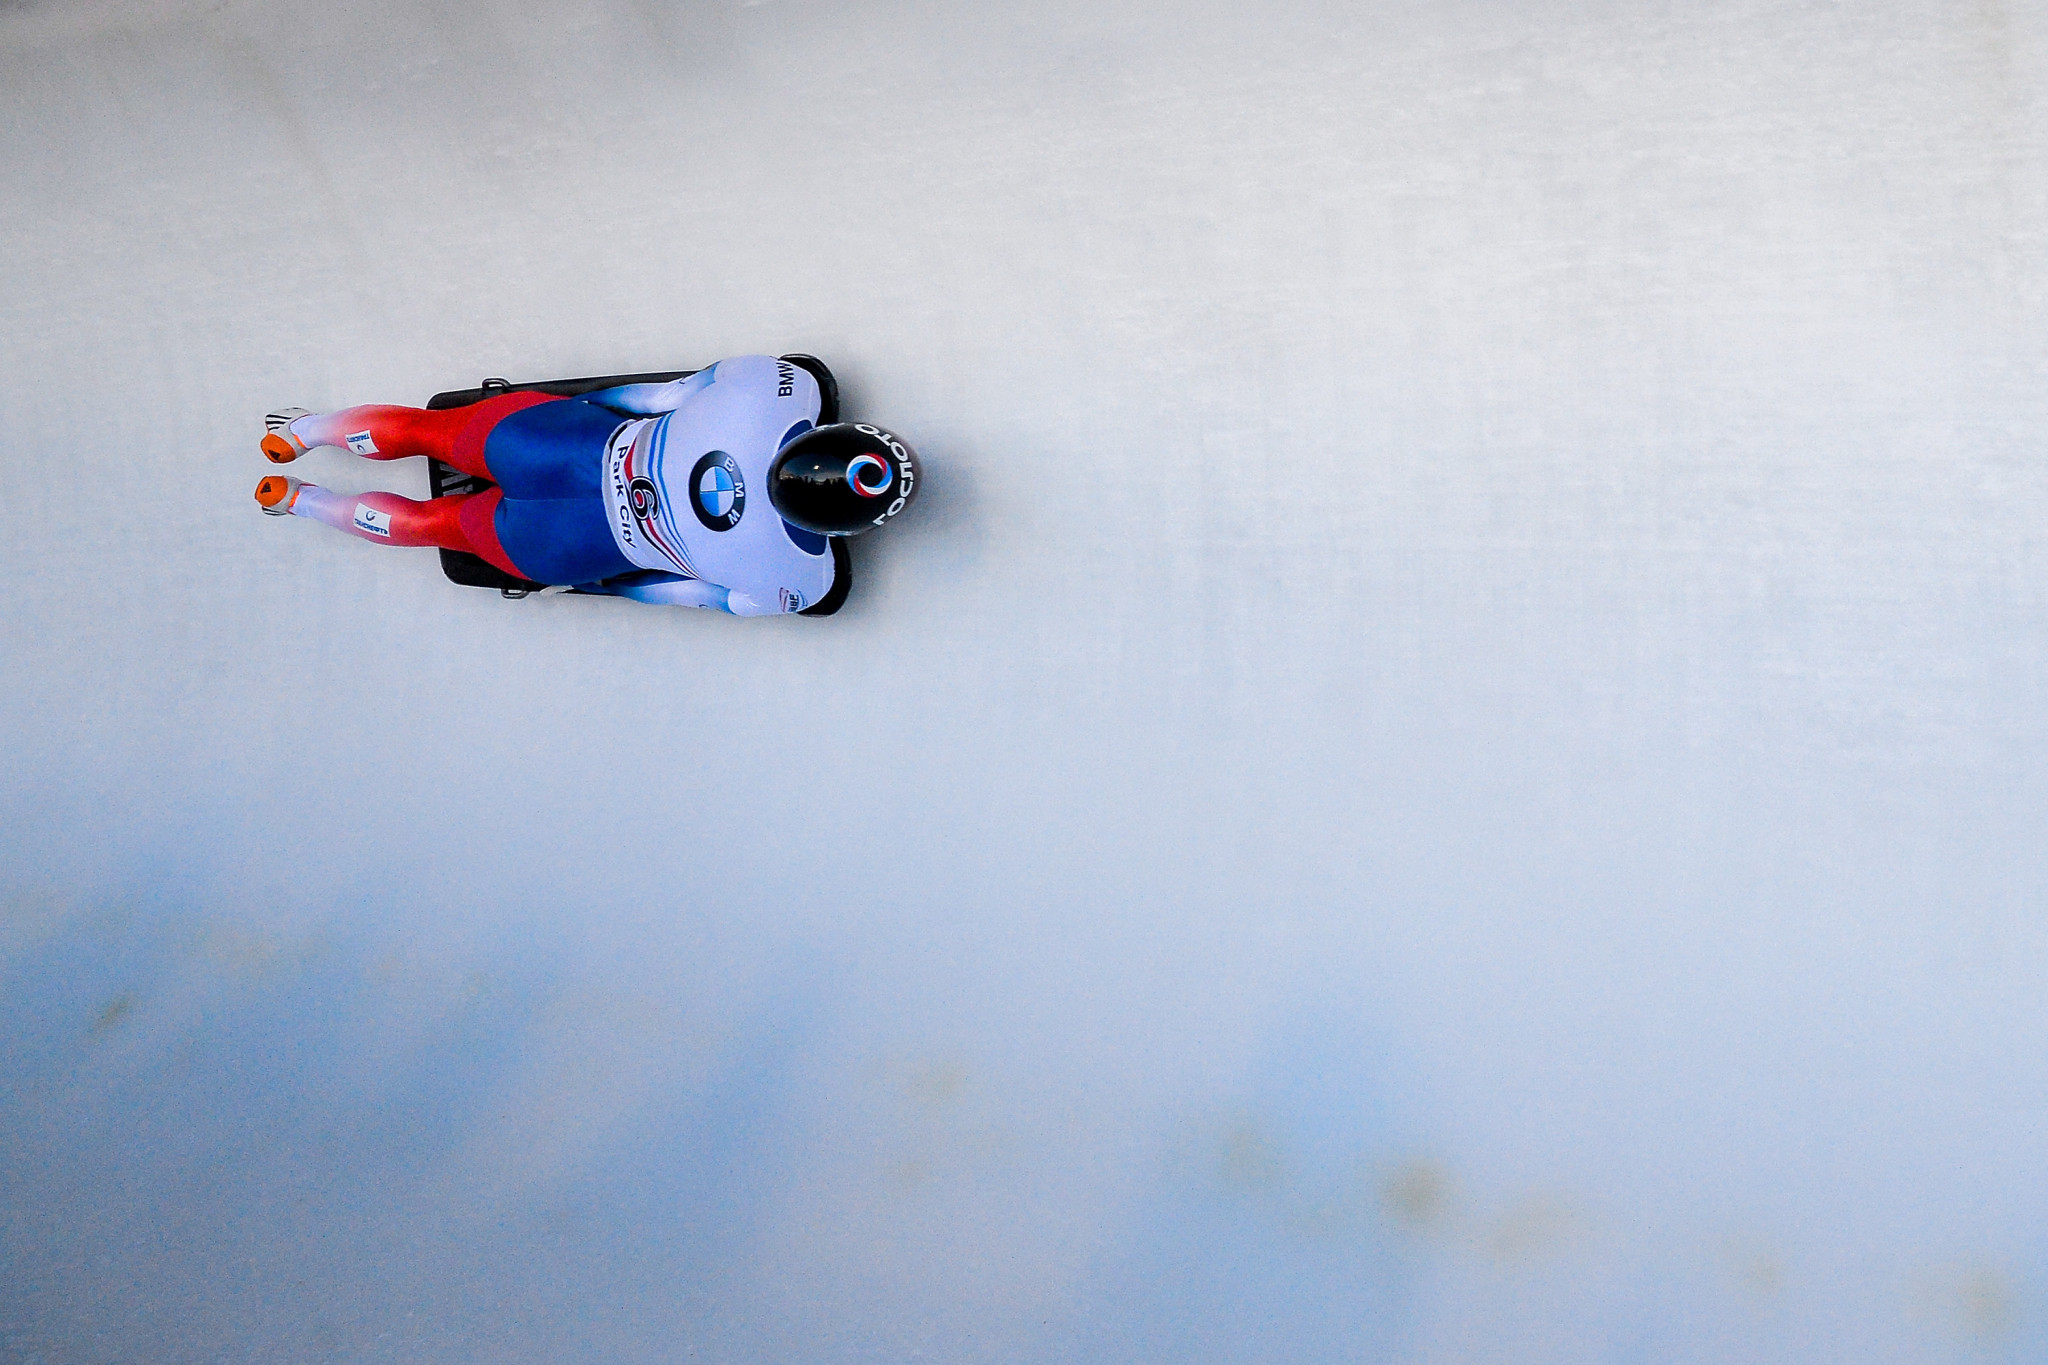 OIympic skeleton champion Aleksandr Tretyakov has been stripped of his gold medal and banned for life from the Olympic Games ©Getty Images